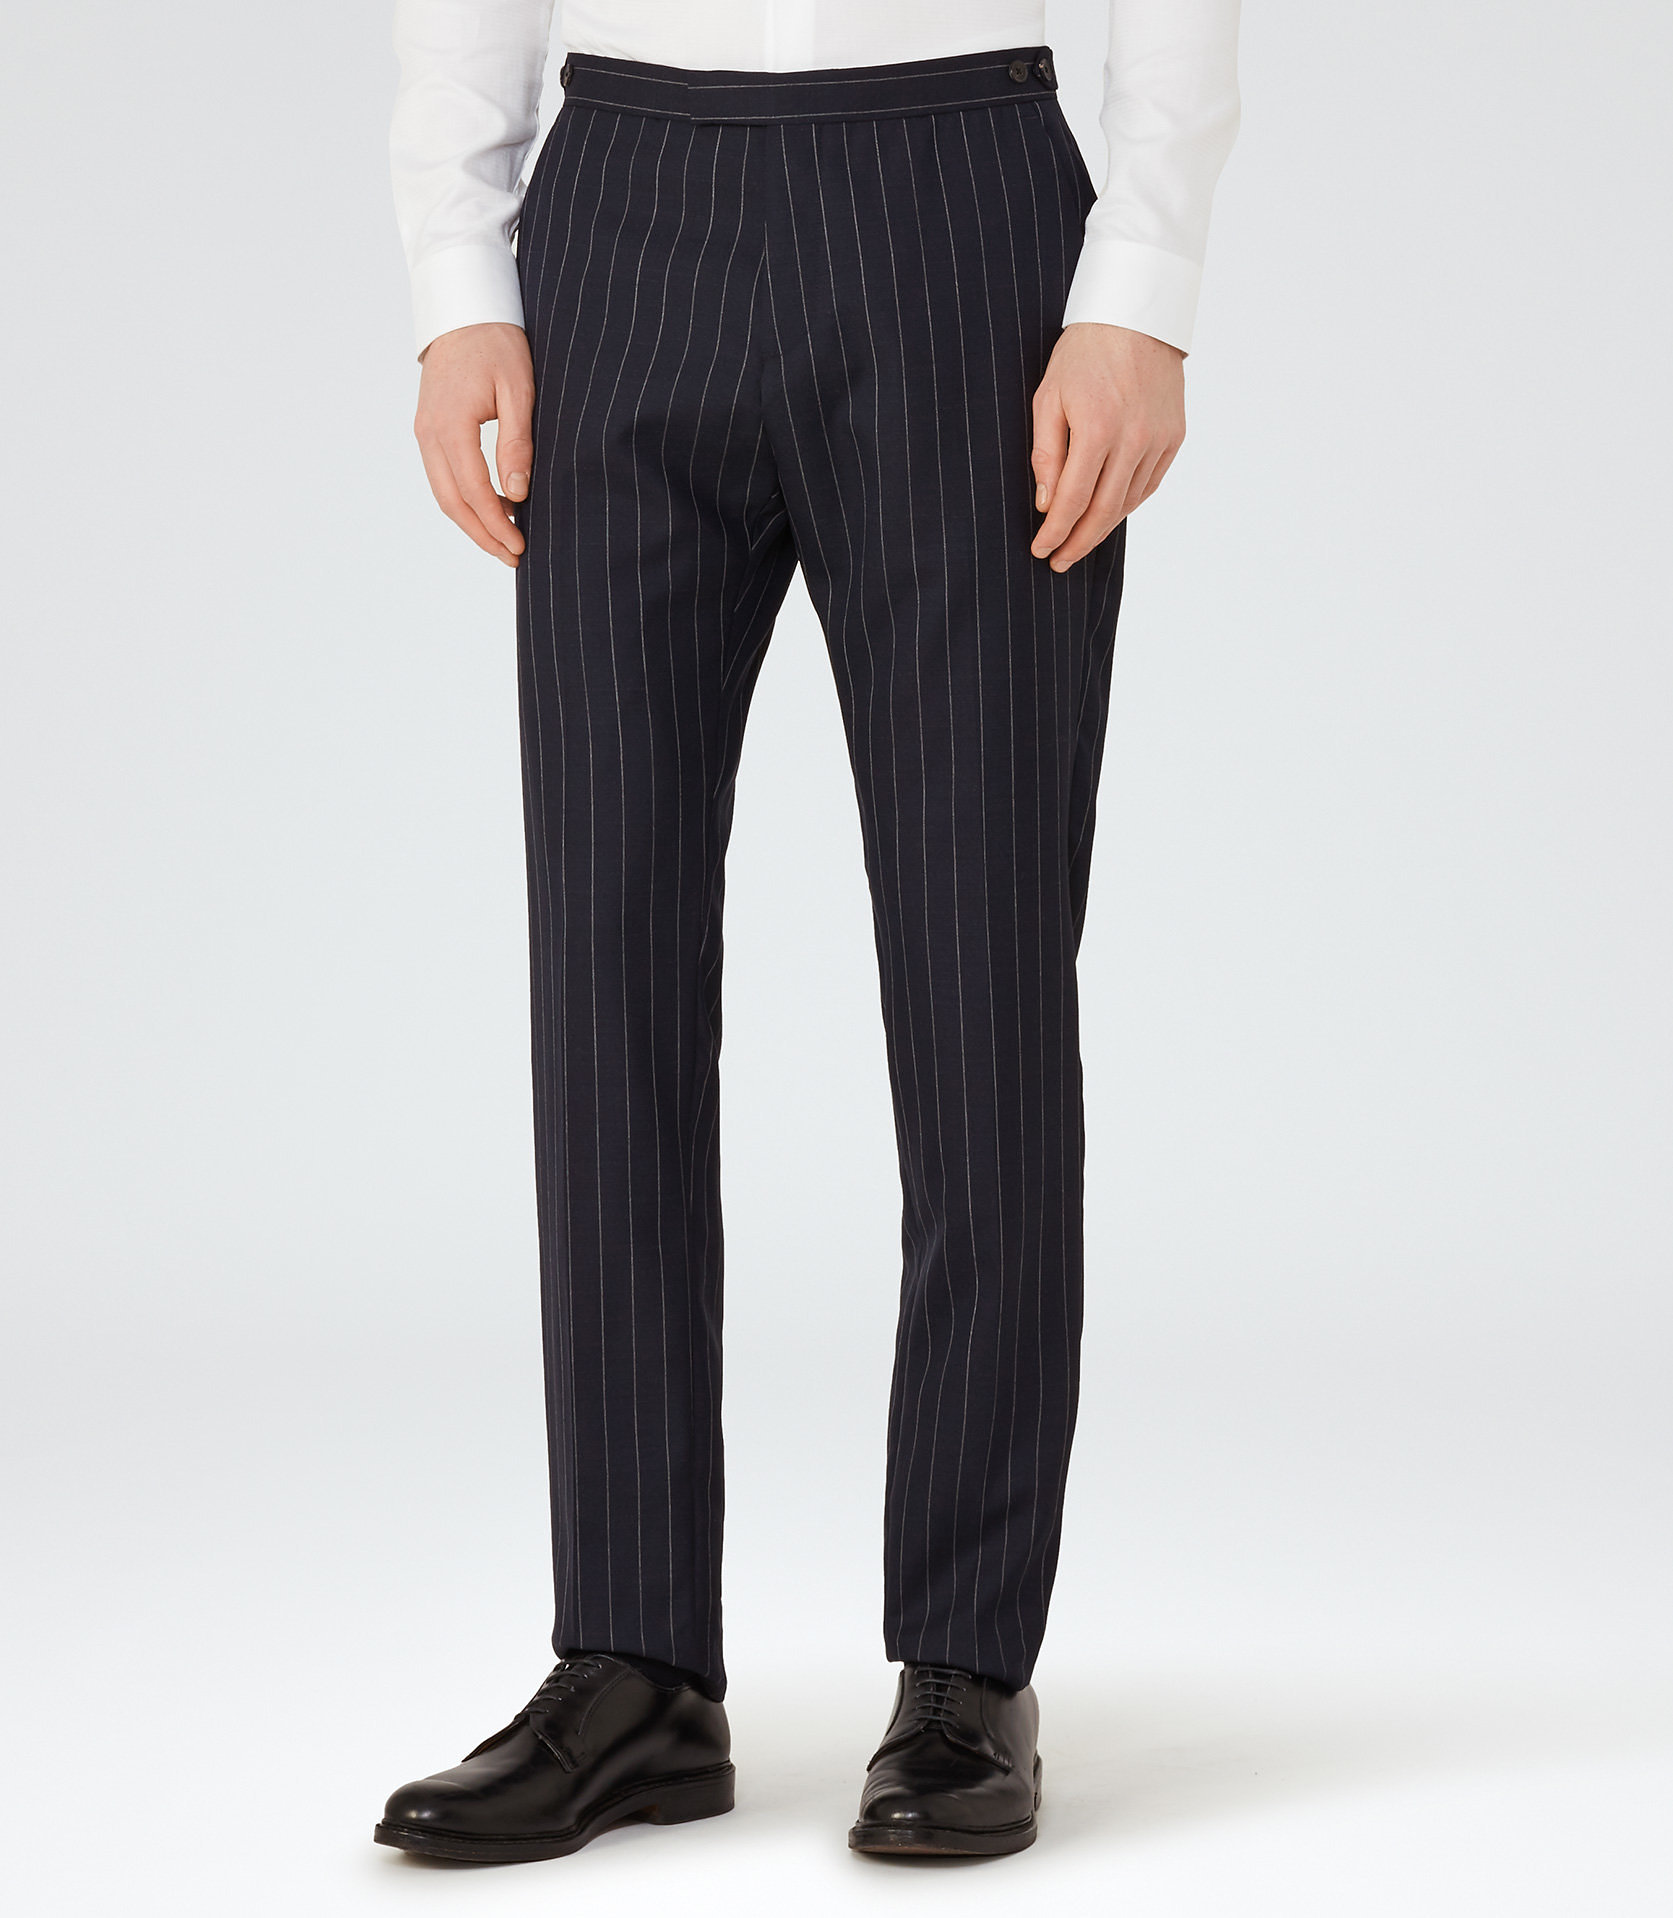 Reiss Navy Pinstripe Trousers